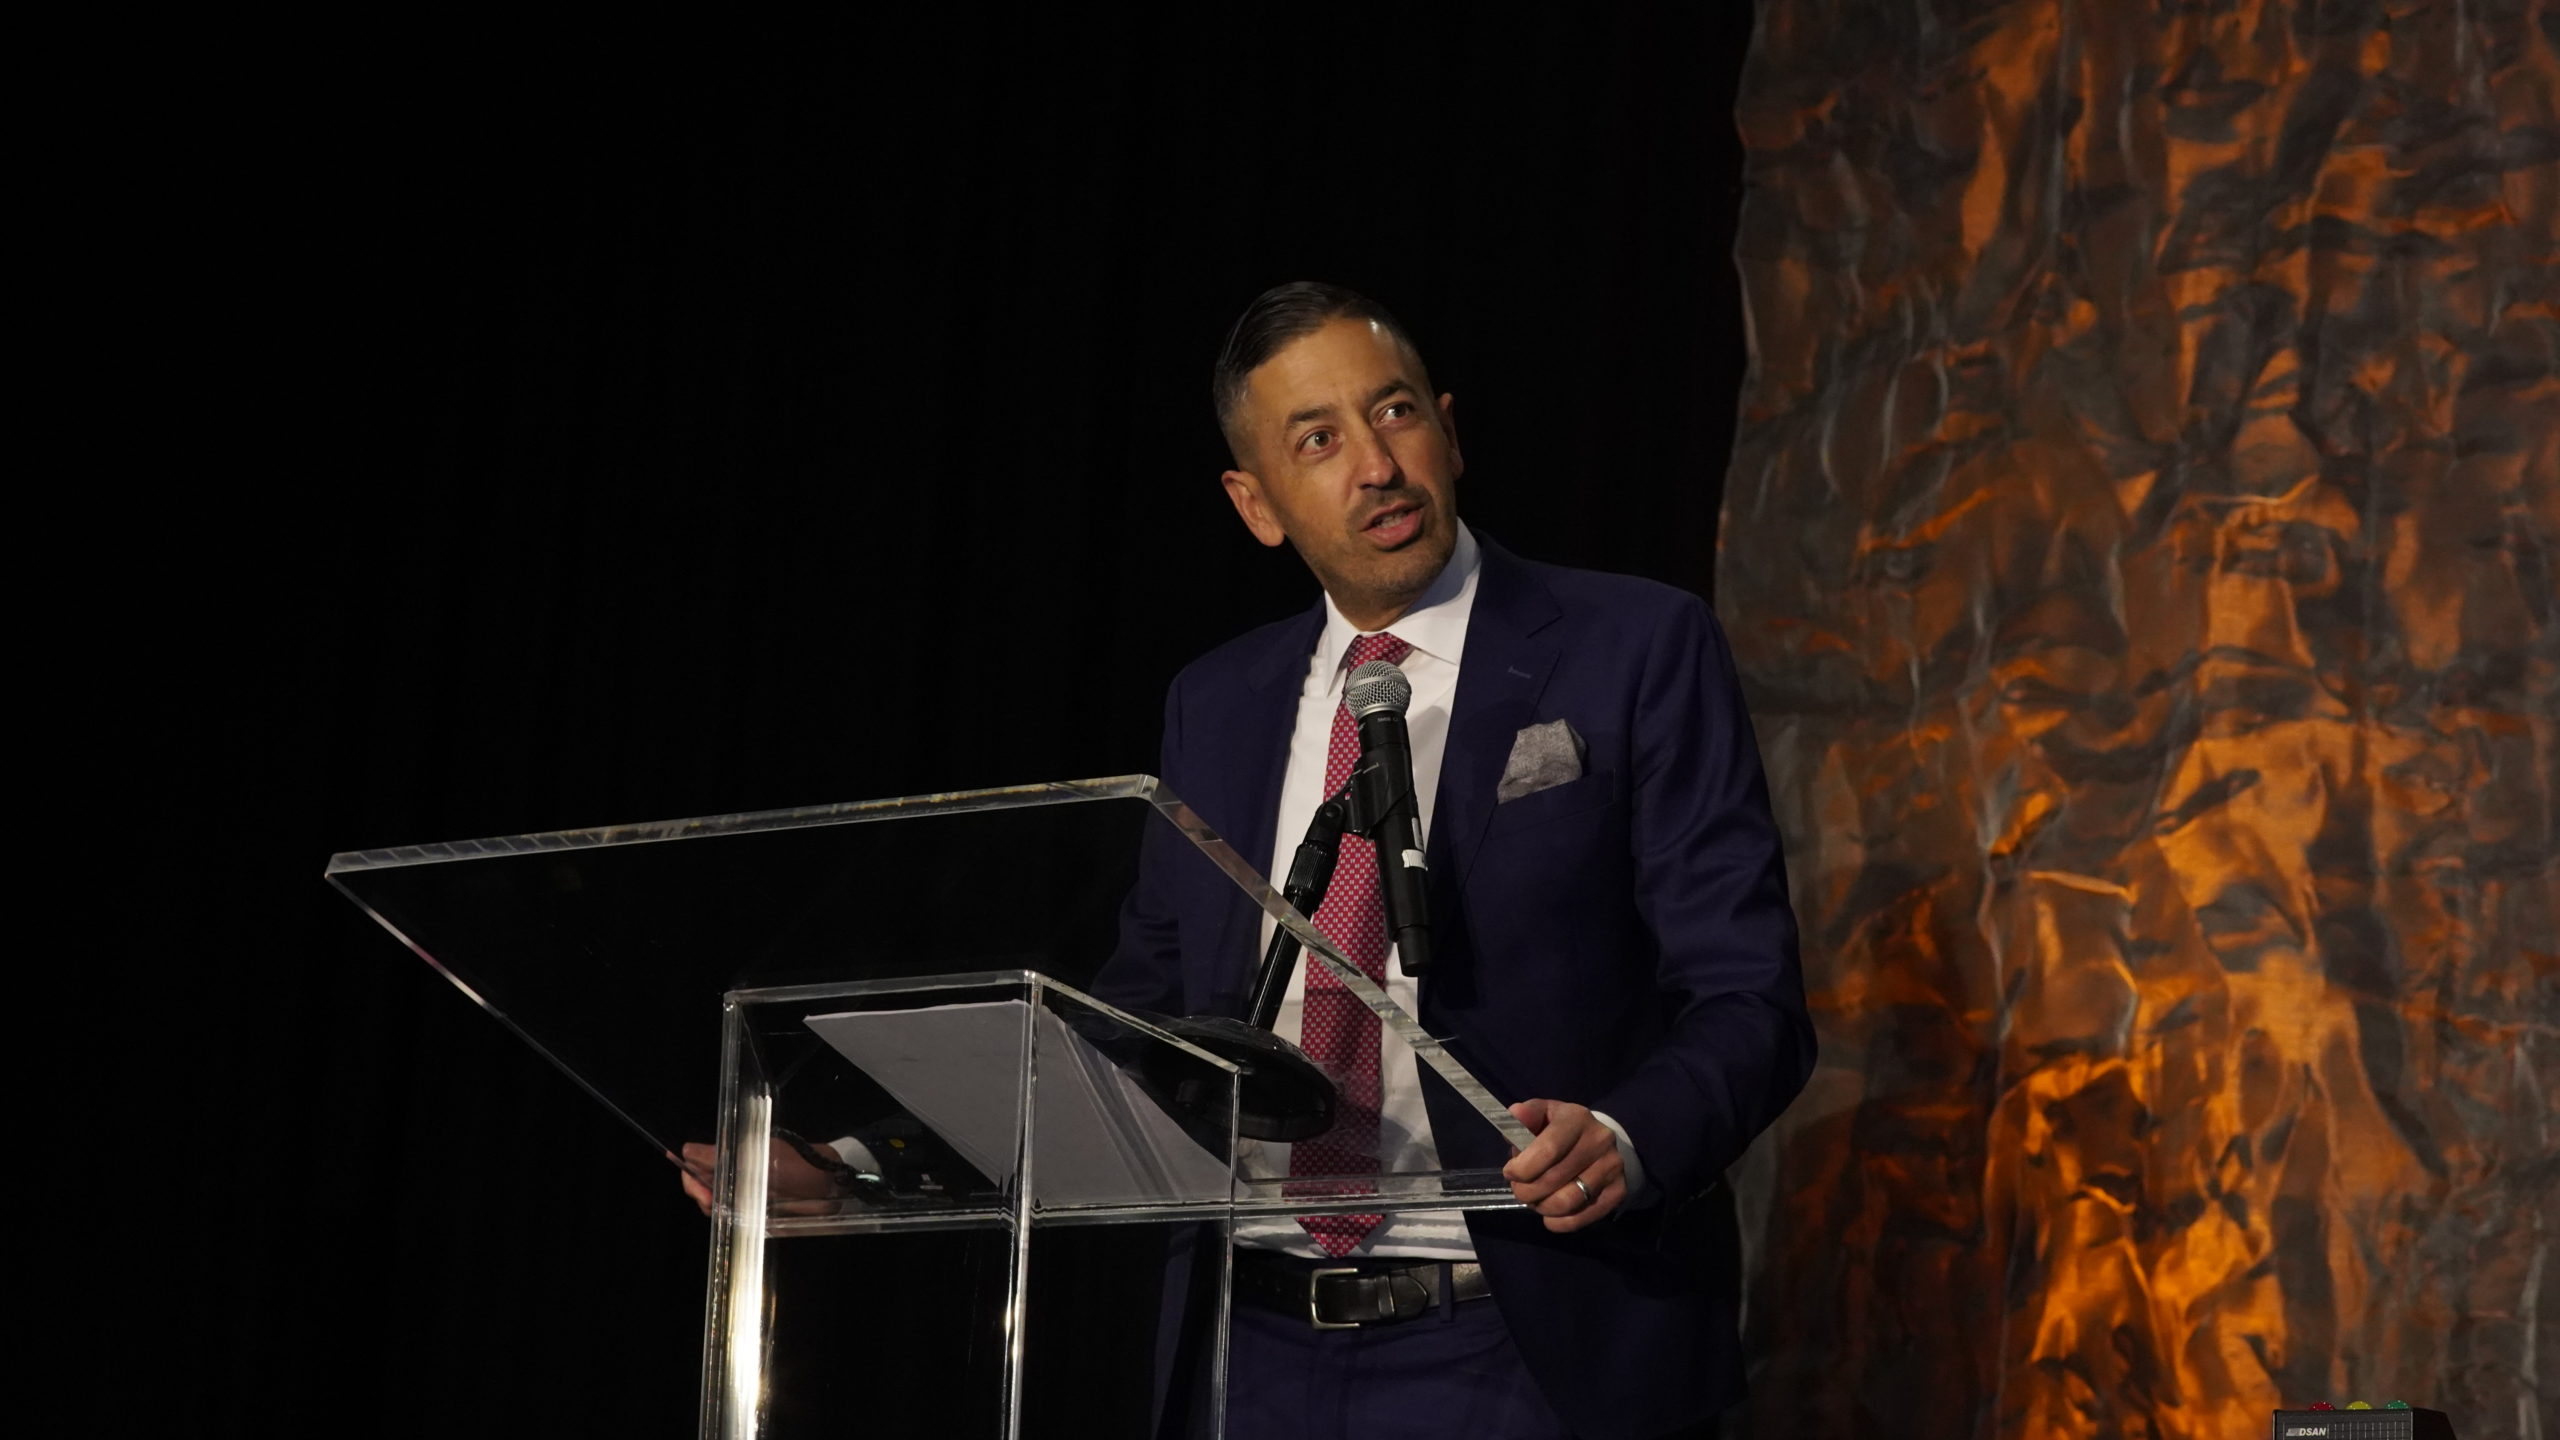 Sandro Galea at the Advancing the Science of Cancer in Latinos conference 2020